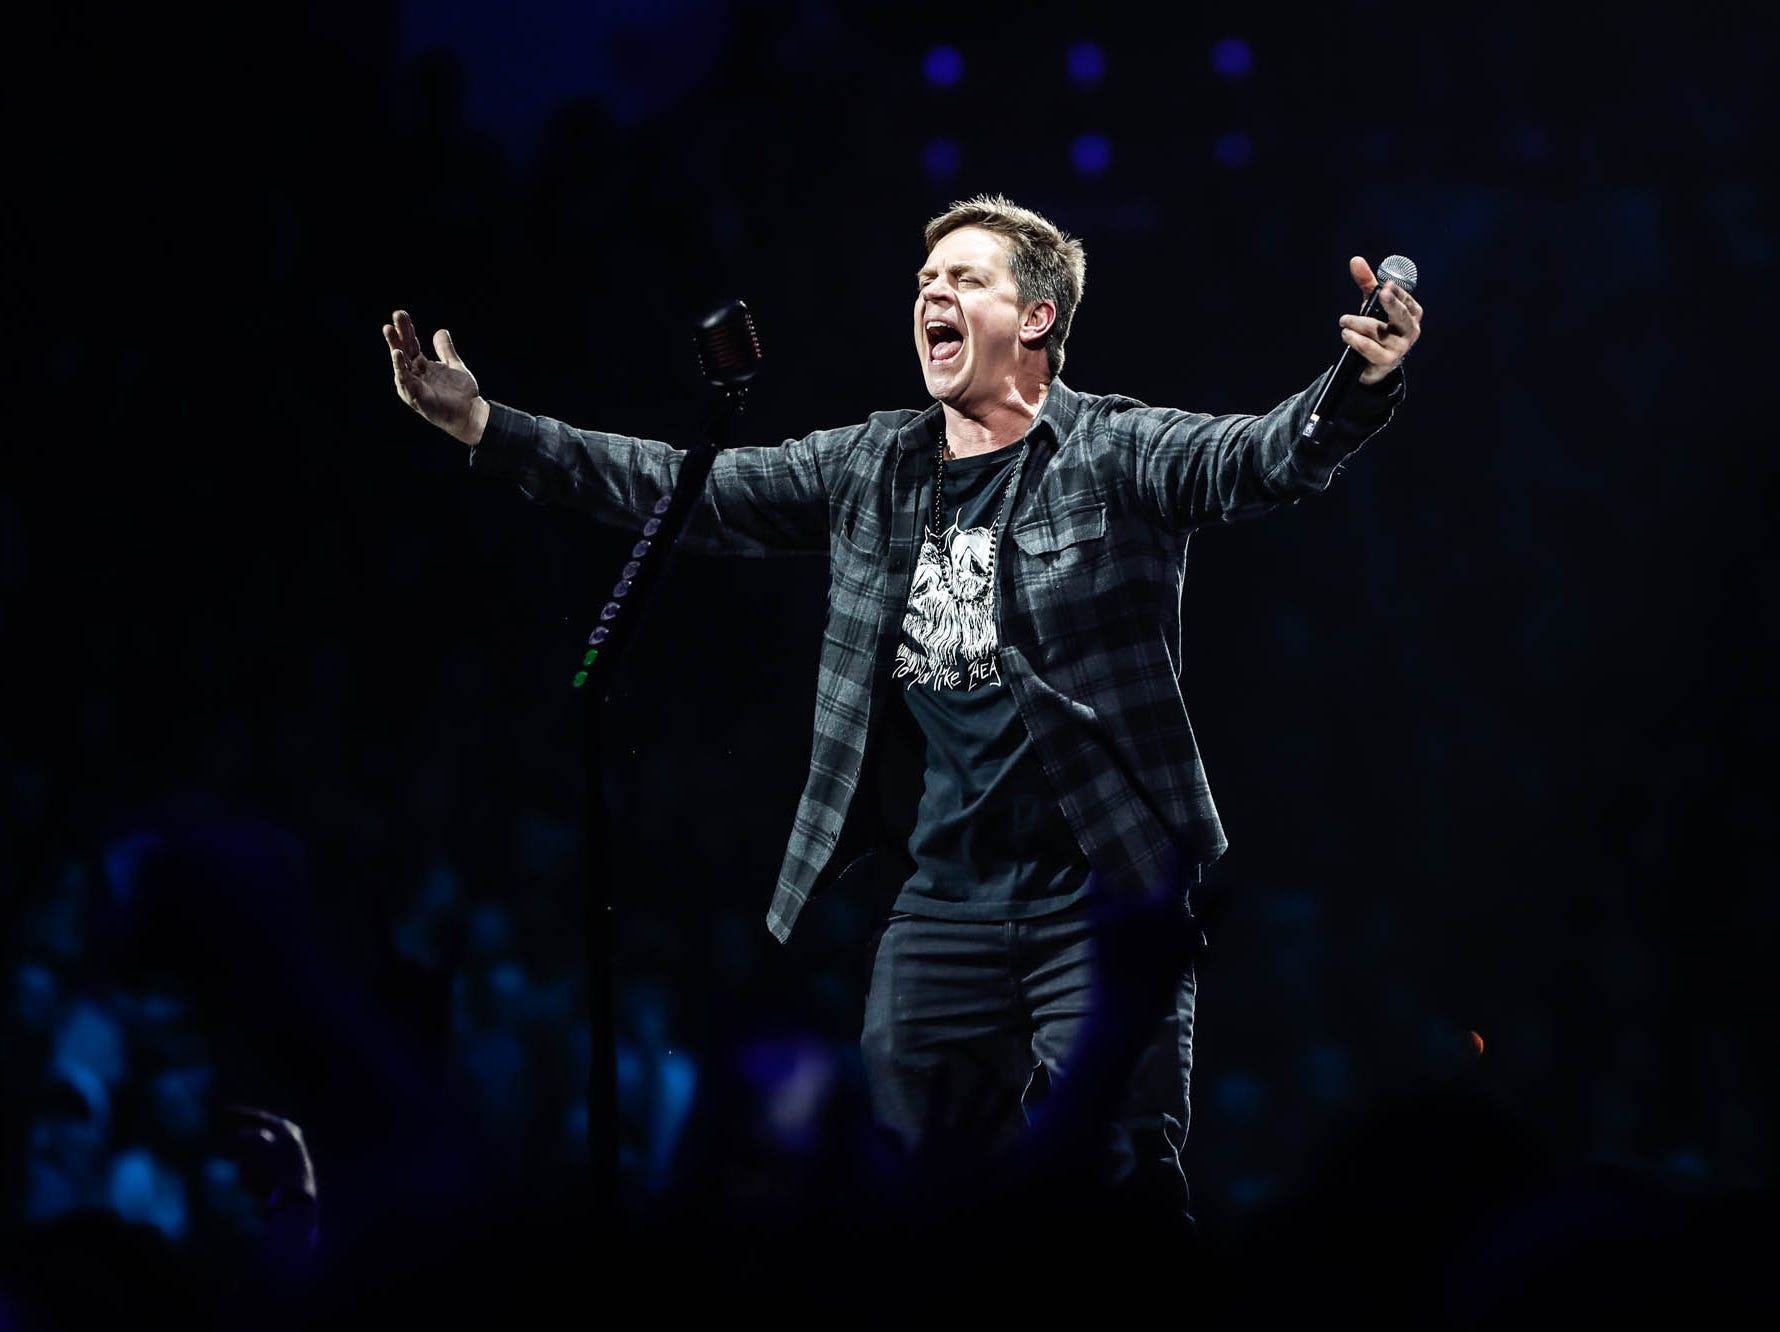 Comedy personality Jim Breuer revs up the crowd before Metallica takes the stage at Bankers Life Fieldhouse on Monday, March 11, 2019.